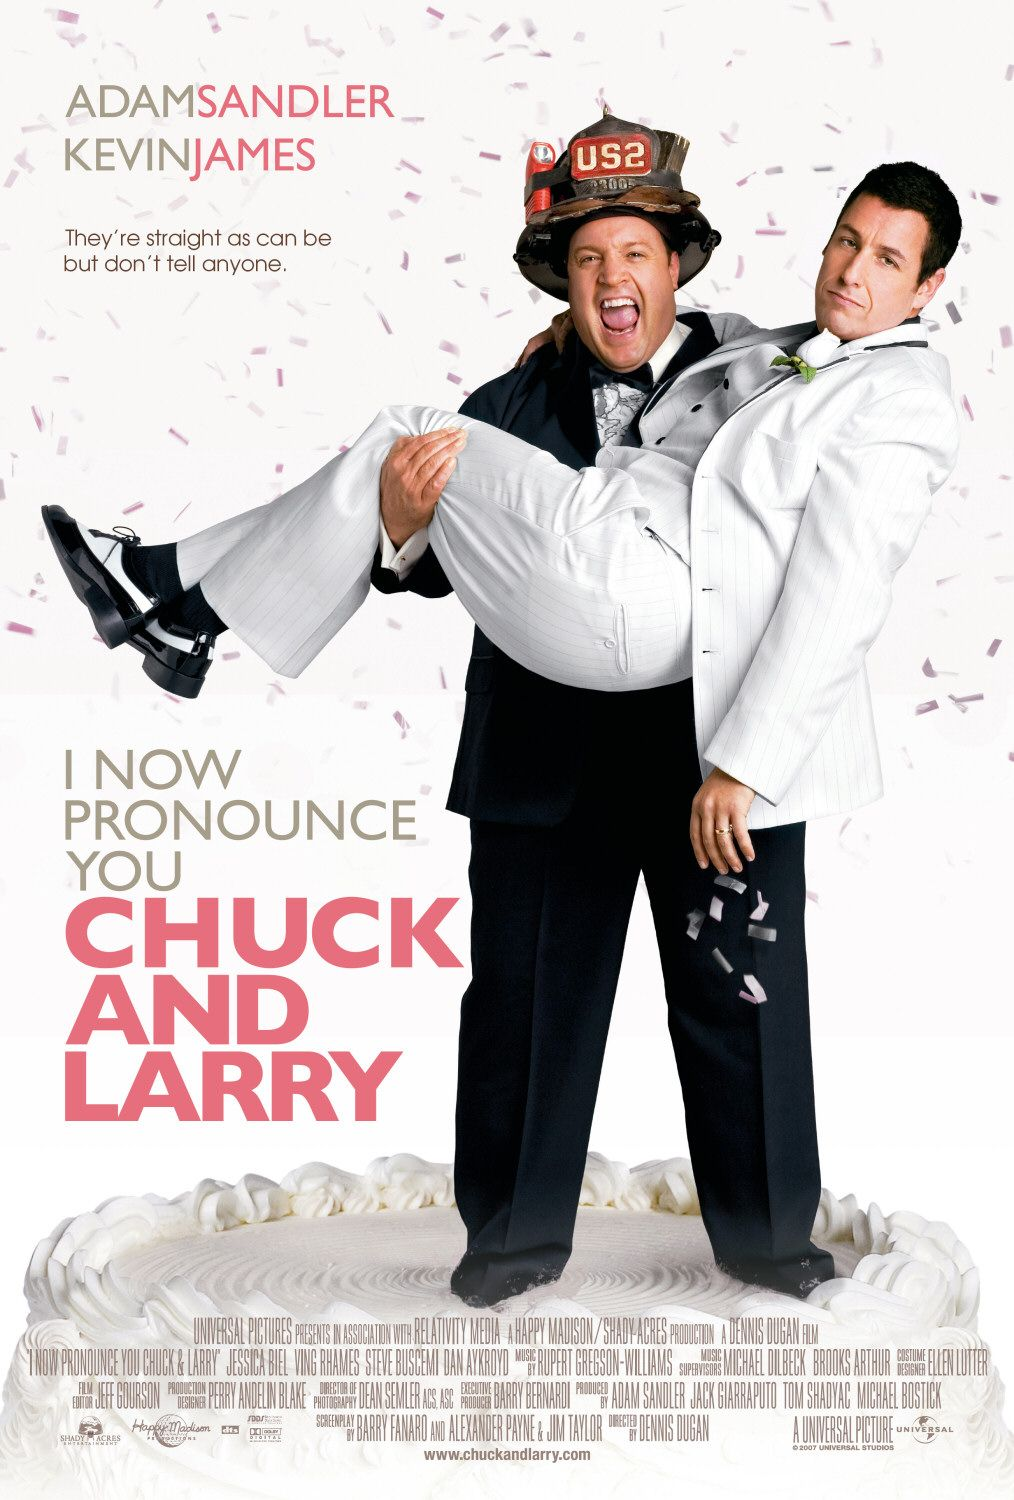 Vi Dichiaro Marito e Marito - I now Pronounce you Chuck and Larry - Adam Sandler, Kevin James, Jessica Biel, Dan Aykroyd